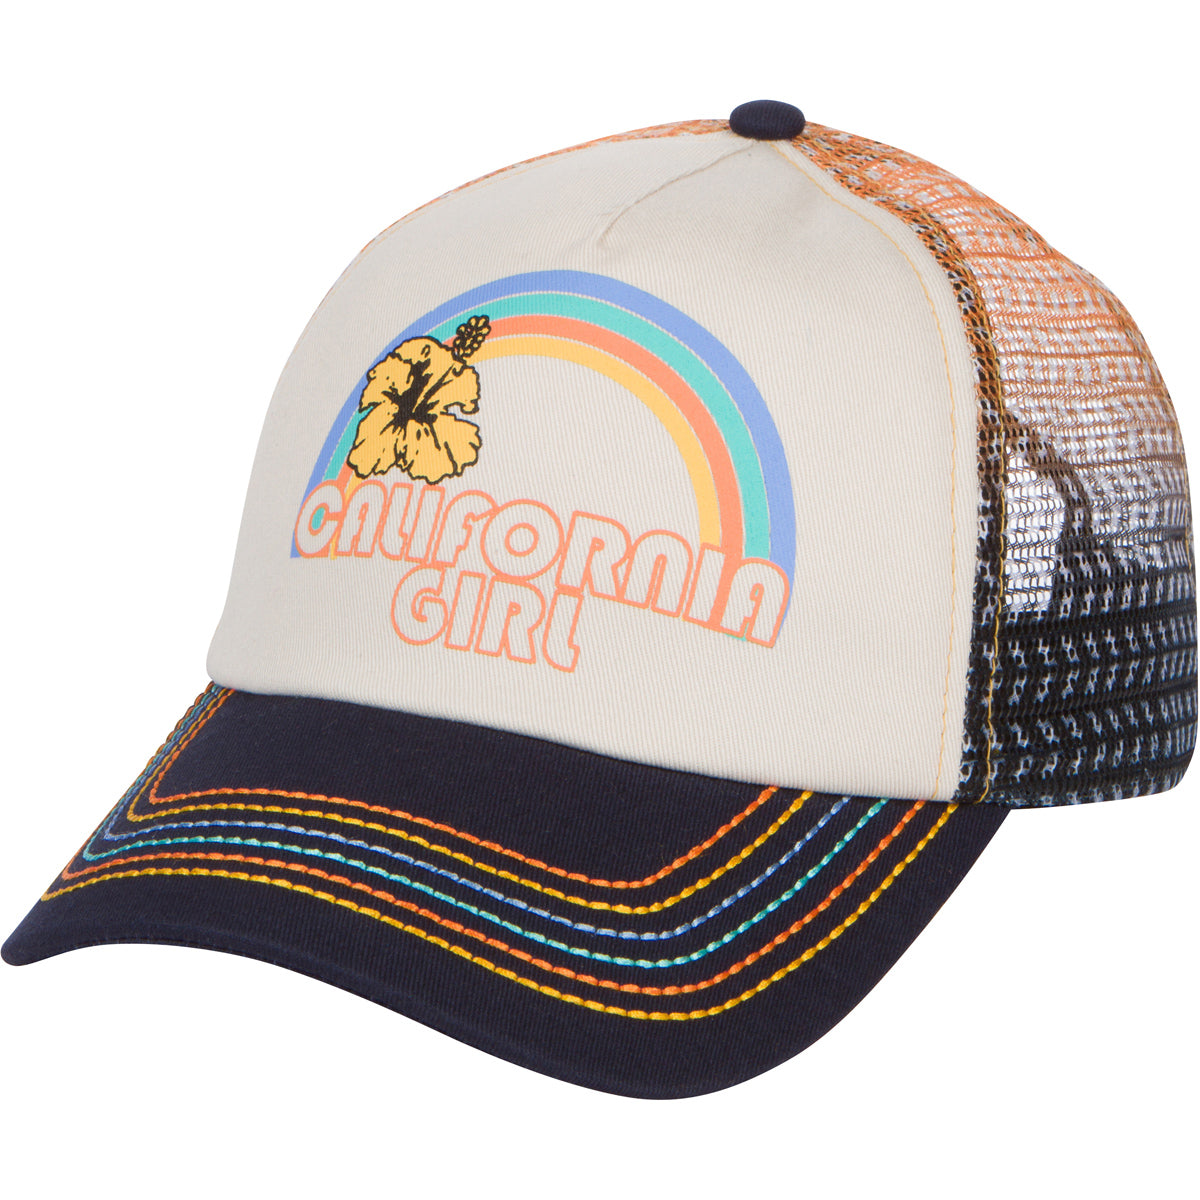 California Girl Trucker Snapback Hat - Vintage Cream with Rainbow Stitching